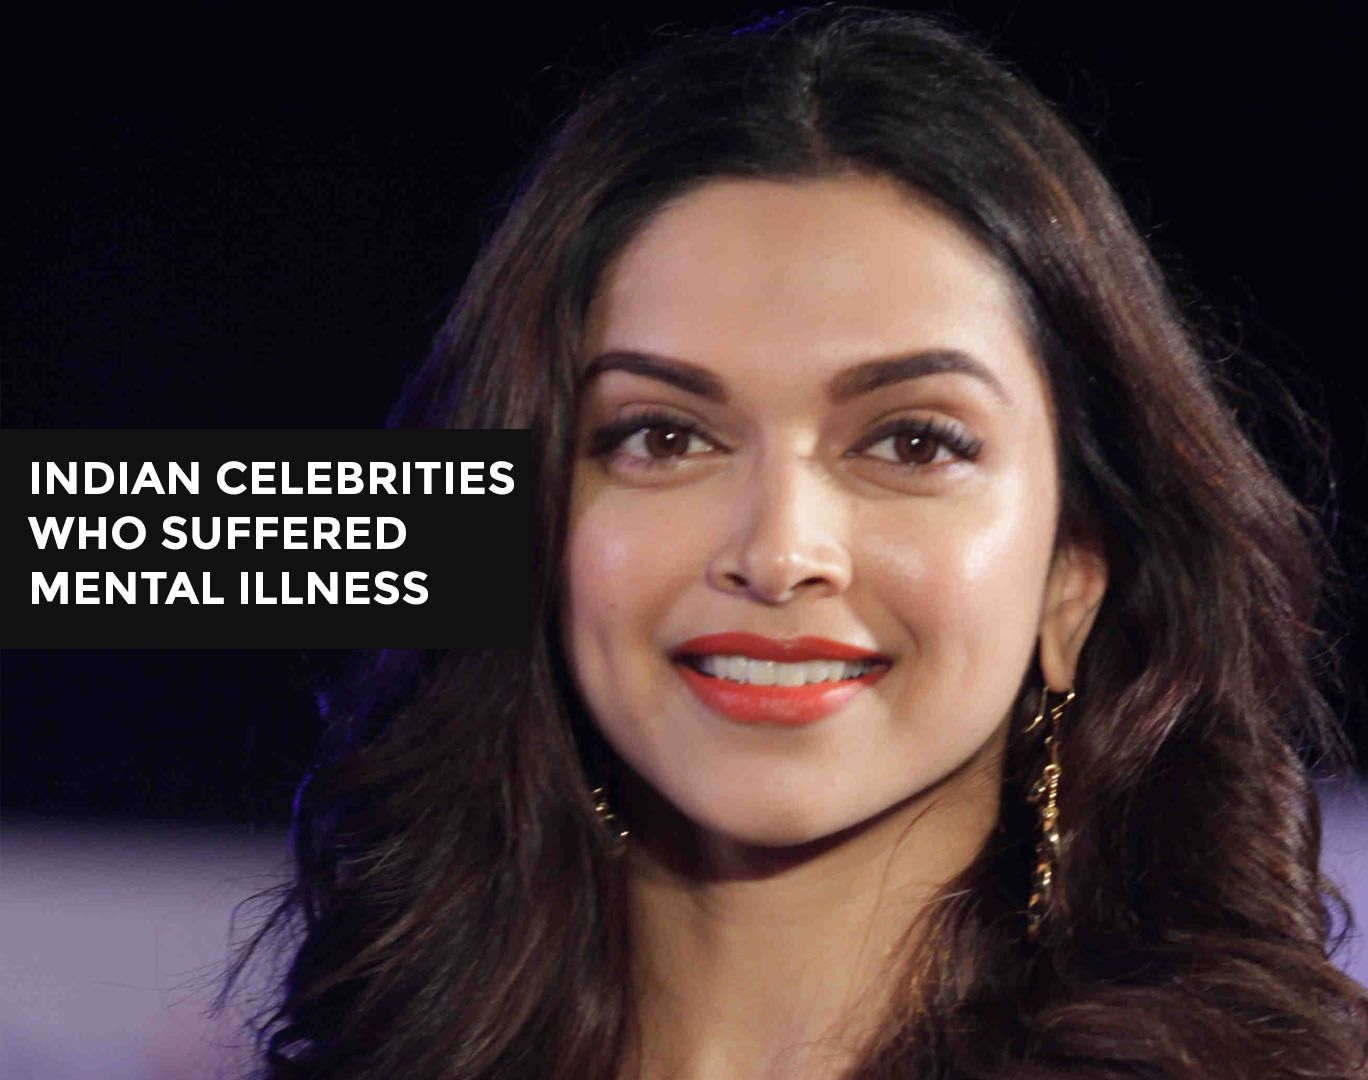 6 Prominent Indian Celebrities Who Suffered Mental Illness